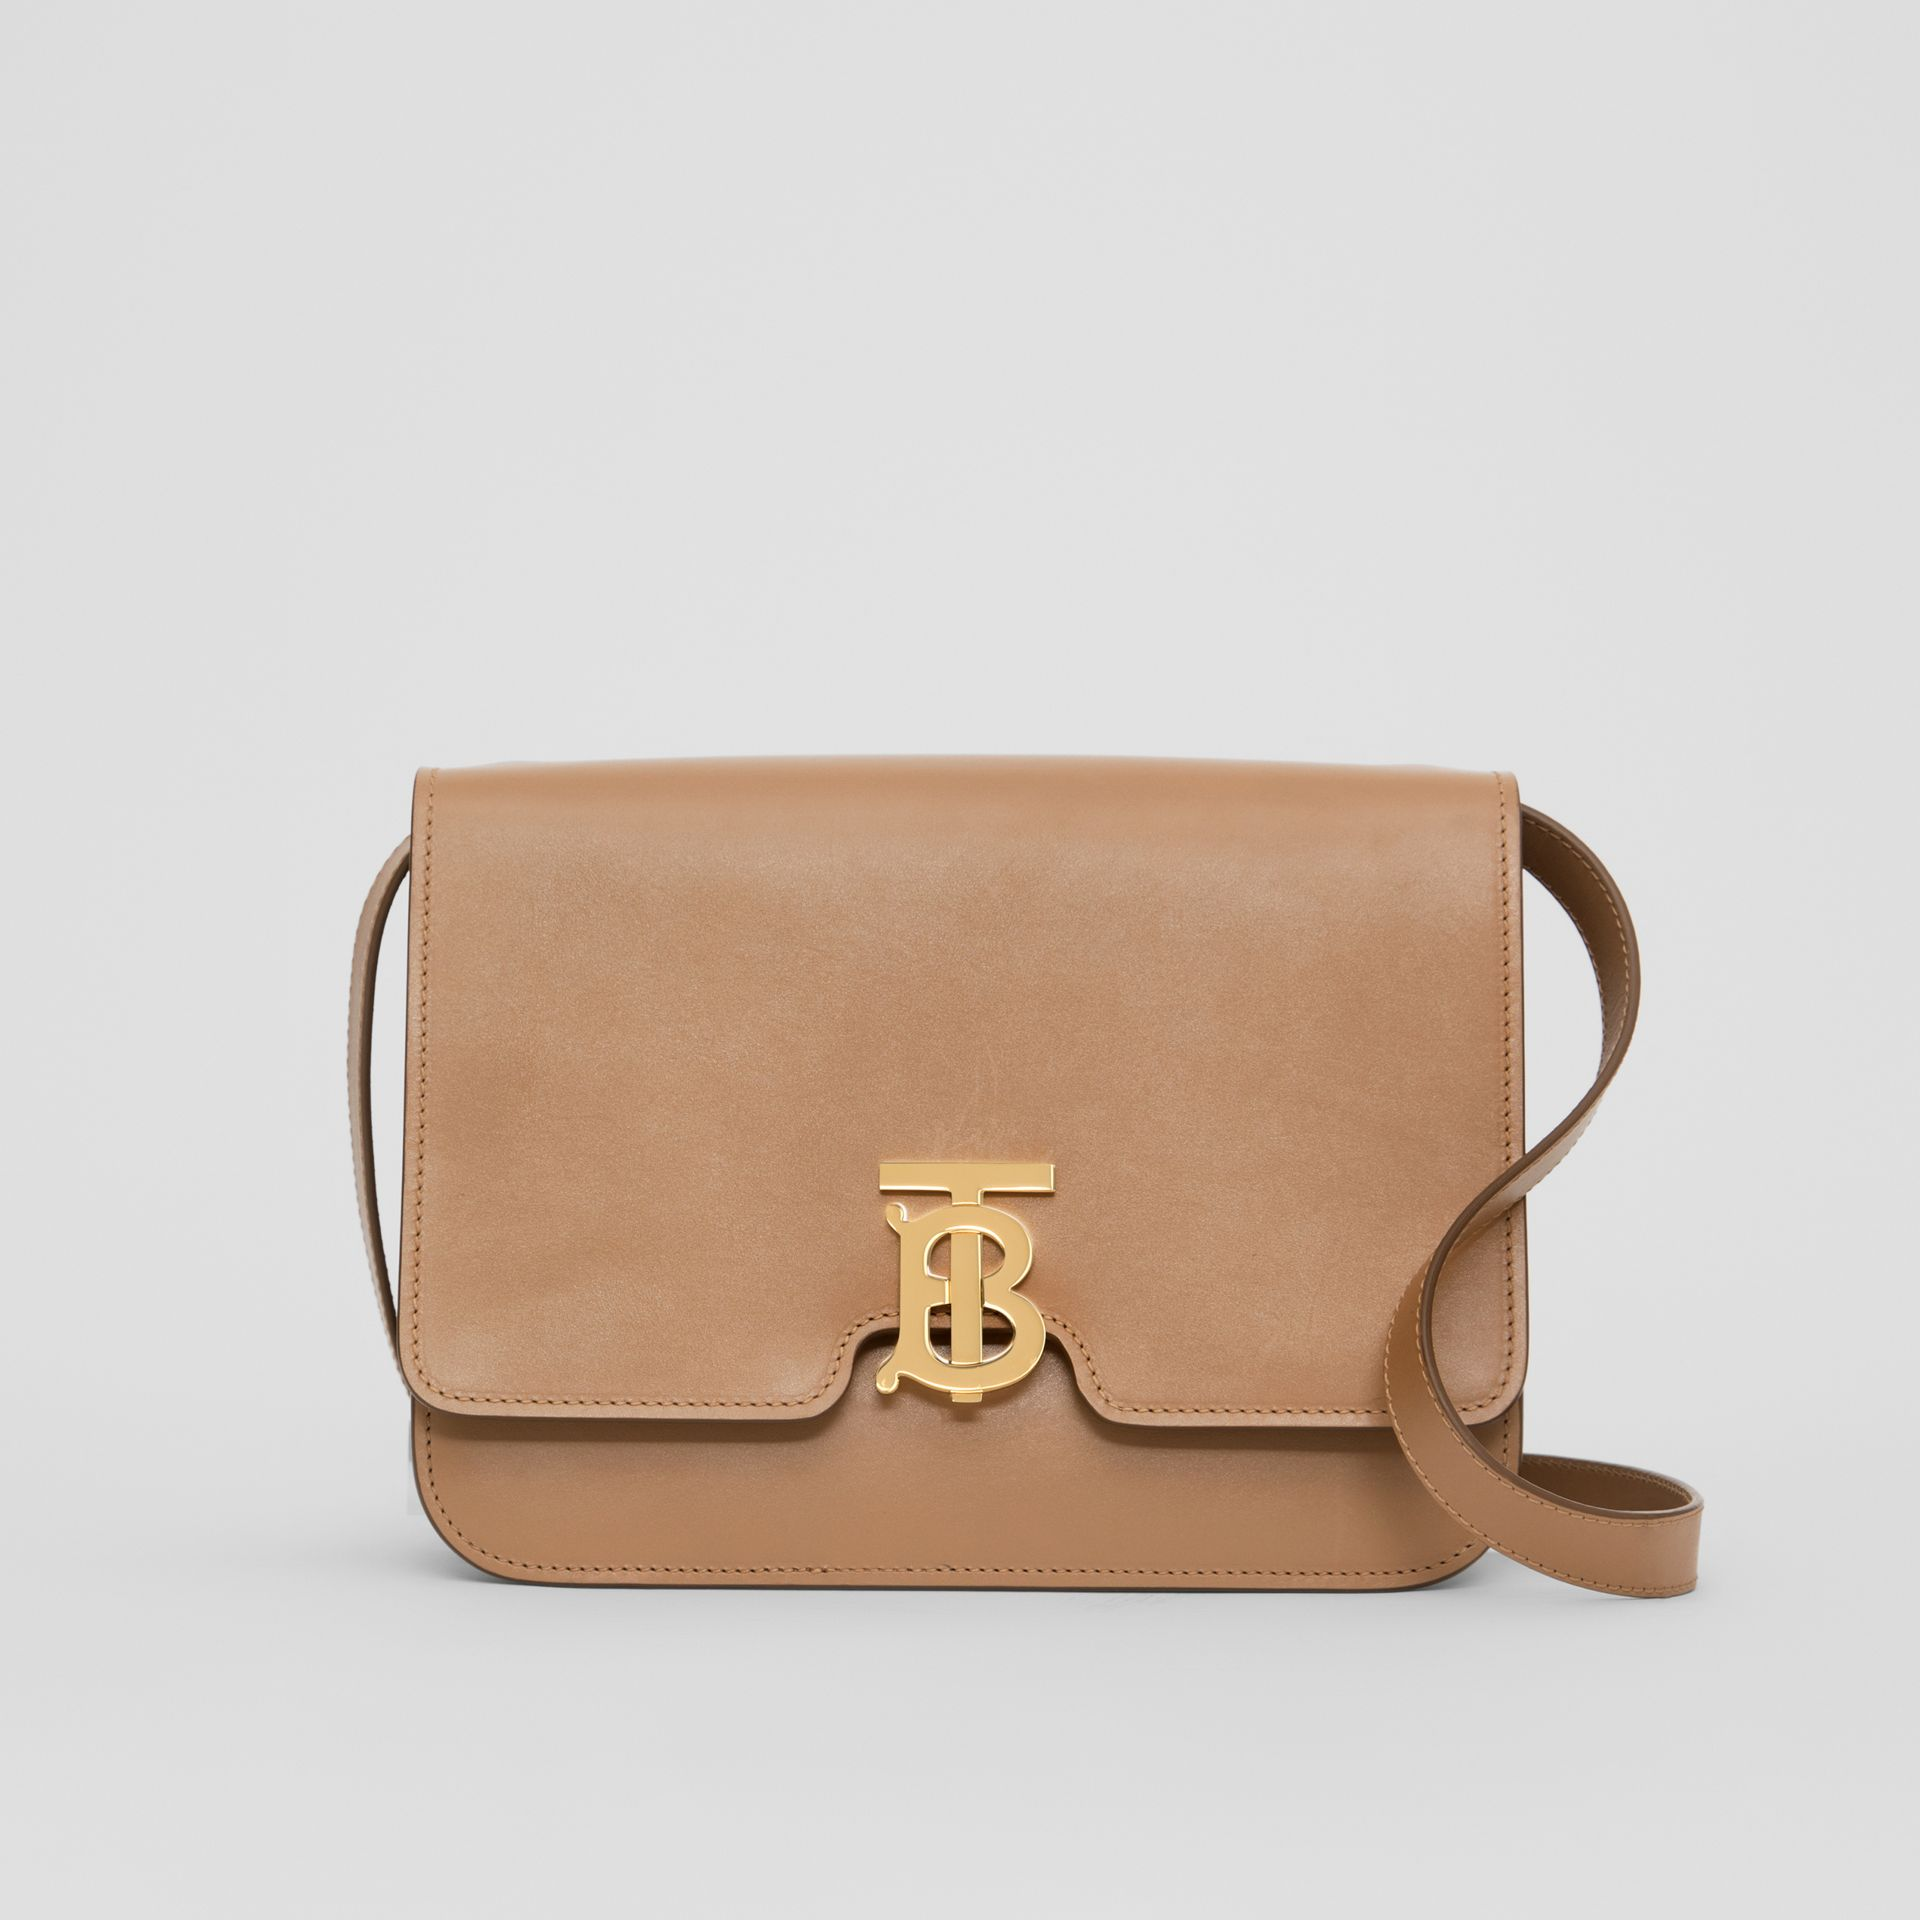 Medium Leather TB Bag in Light Camel - Women | Burberry Singapore - gallery image 0